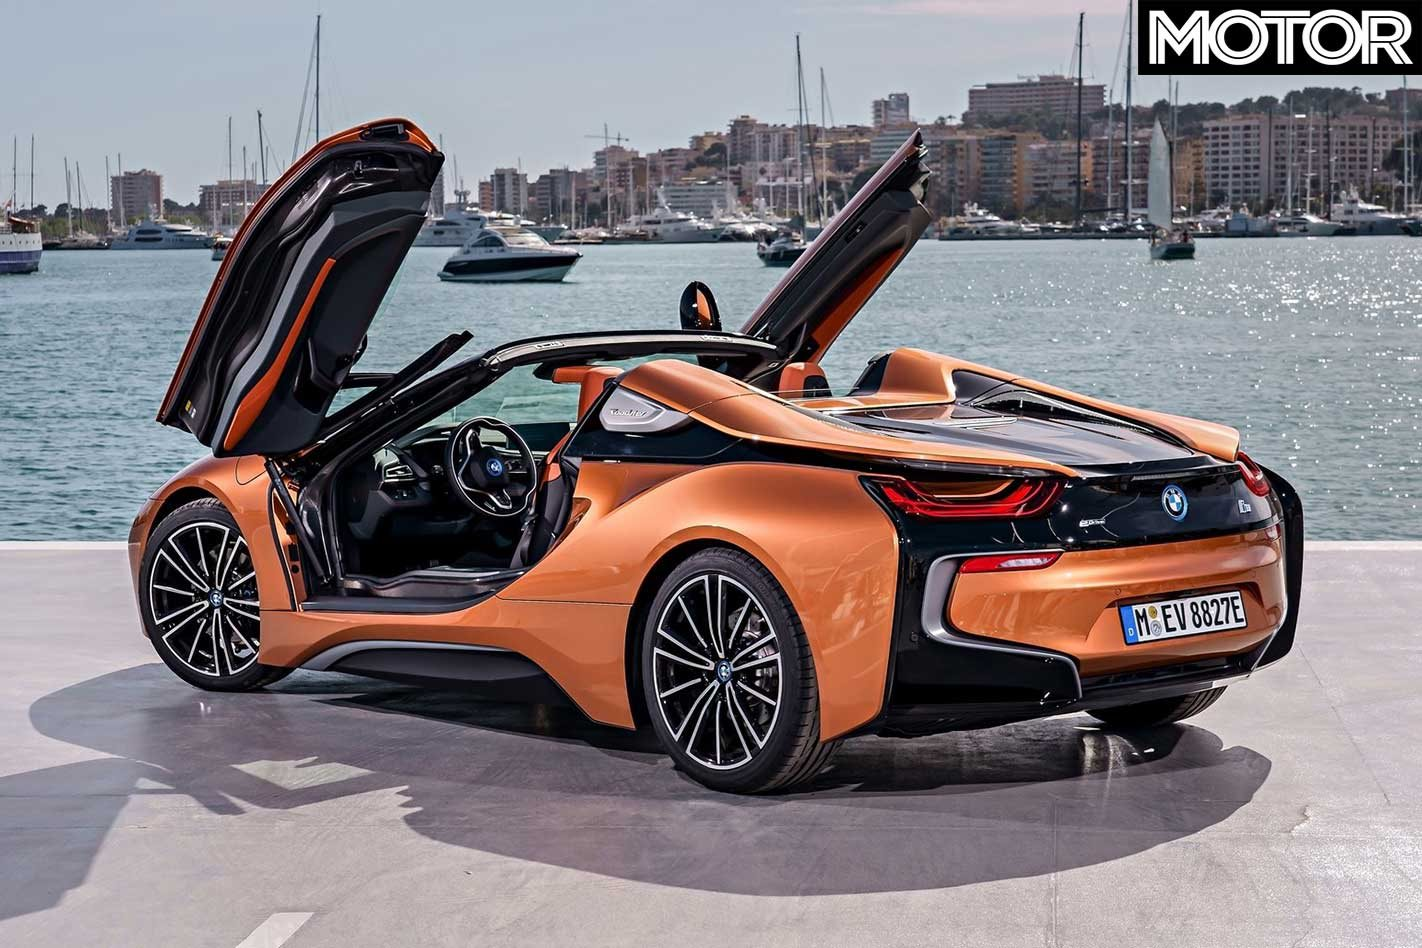 2019 Bmw I8 Roadster Pricing Revealed